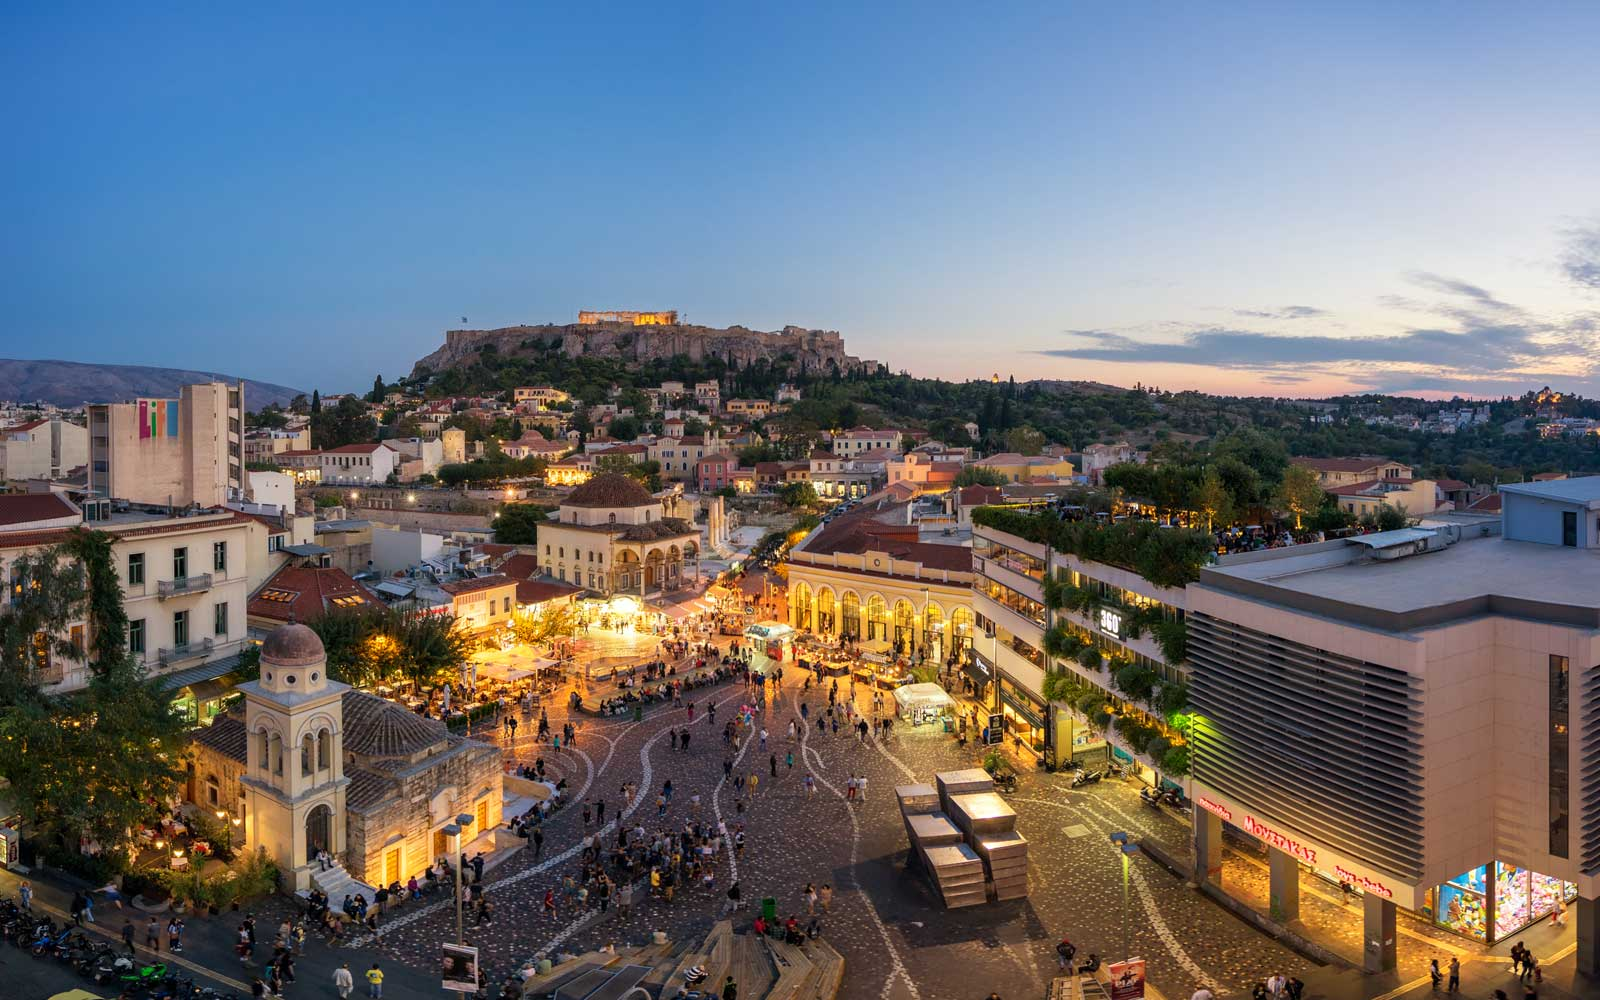 See locations like Monastiraki Square and the Acropolis of Athens.